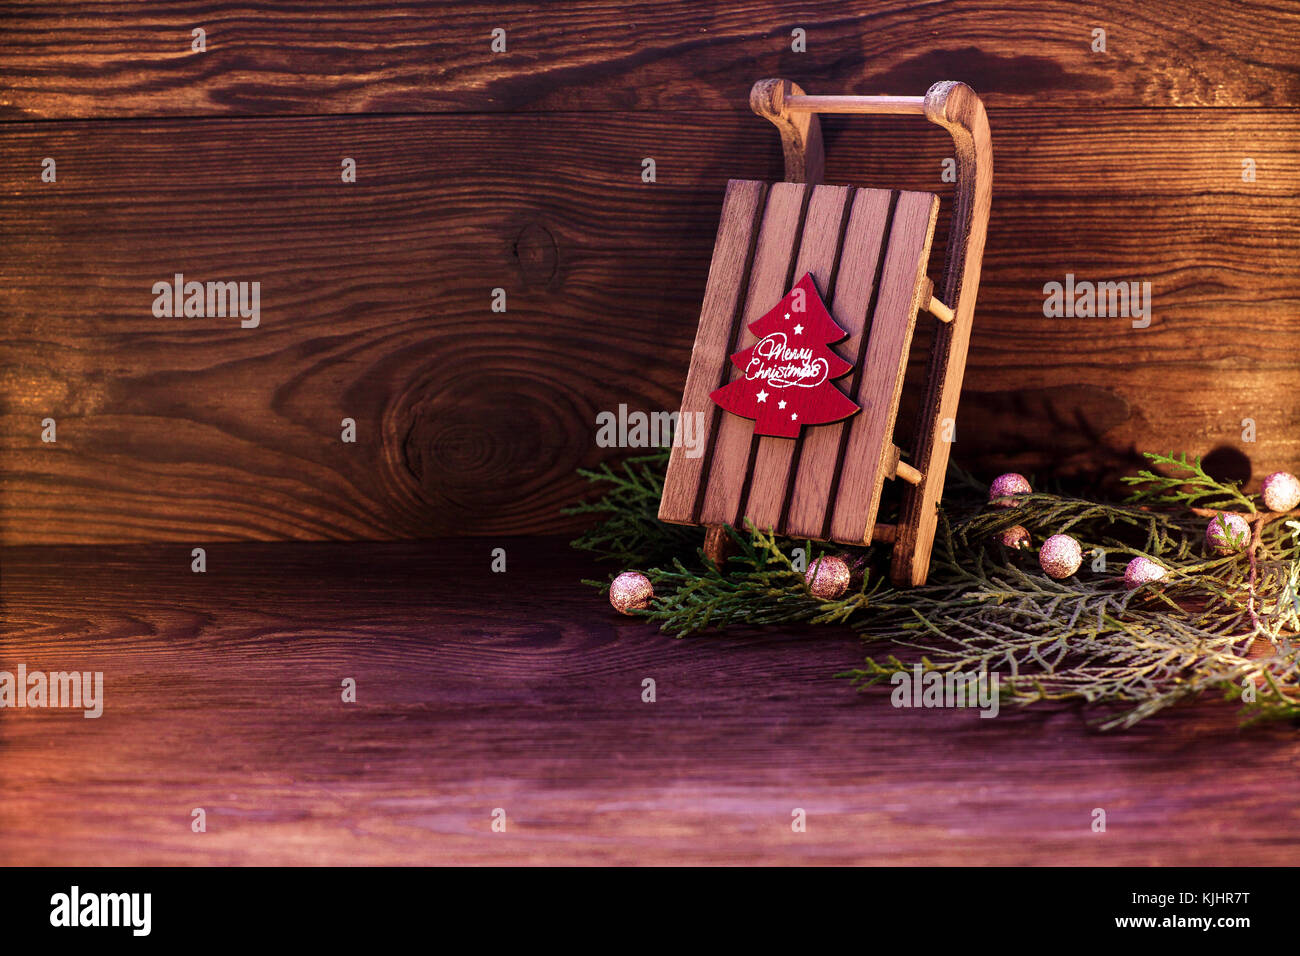 sled and Christmas decor Stock Photo: 166348556 - Alamy